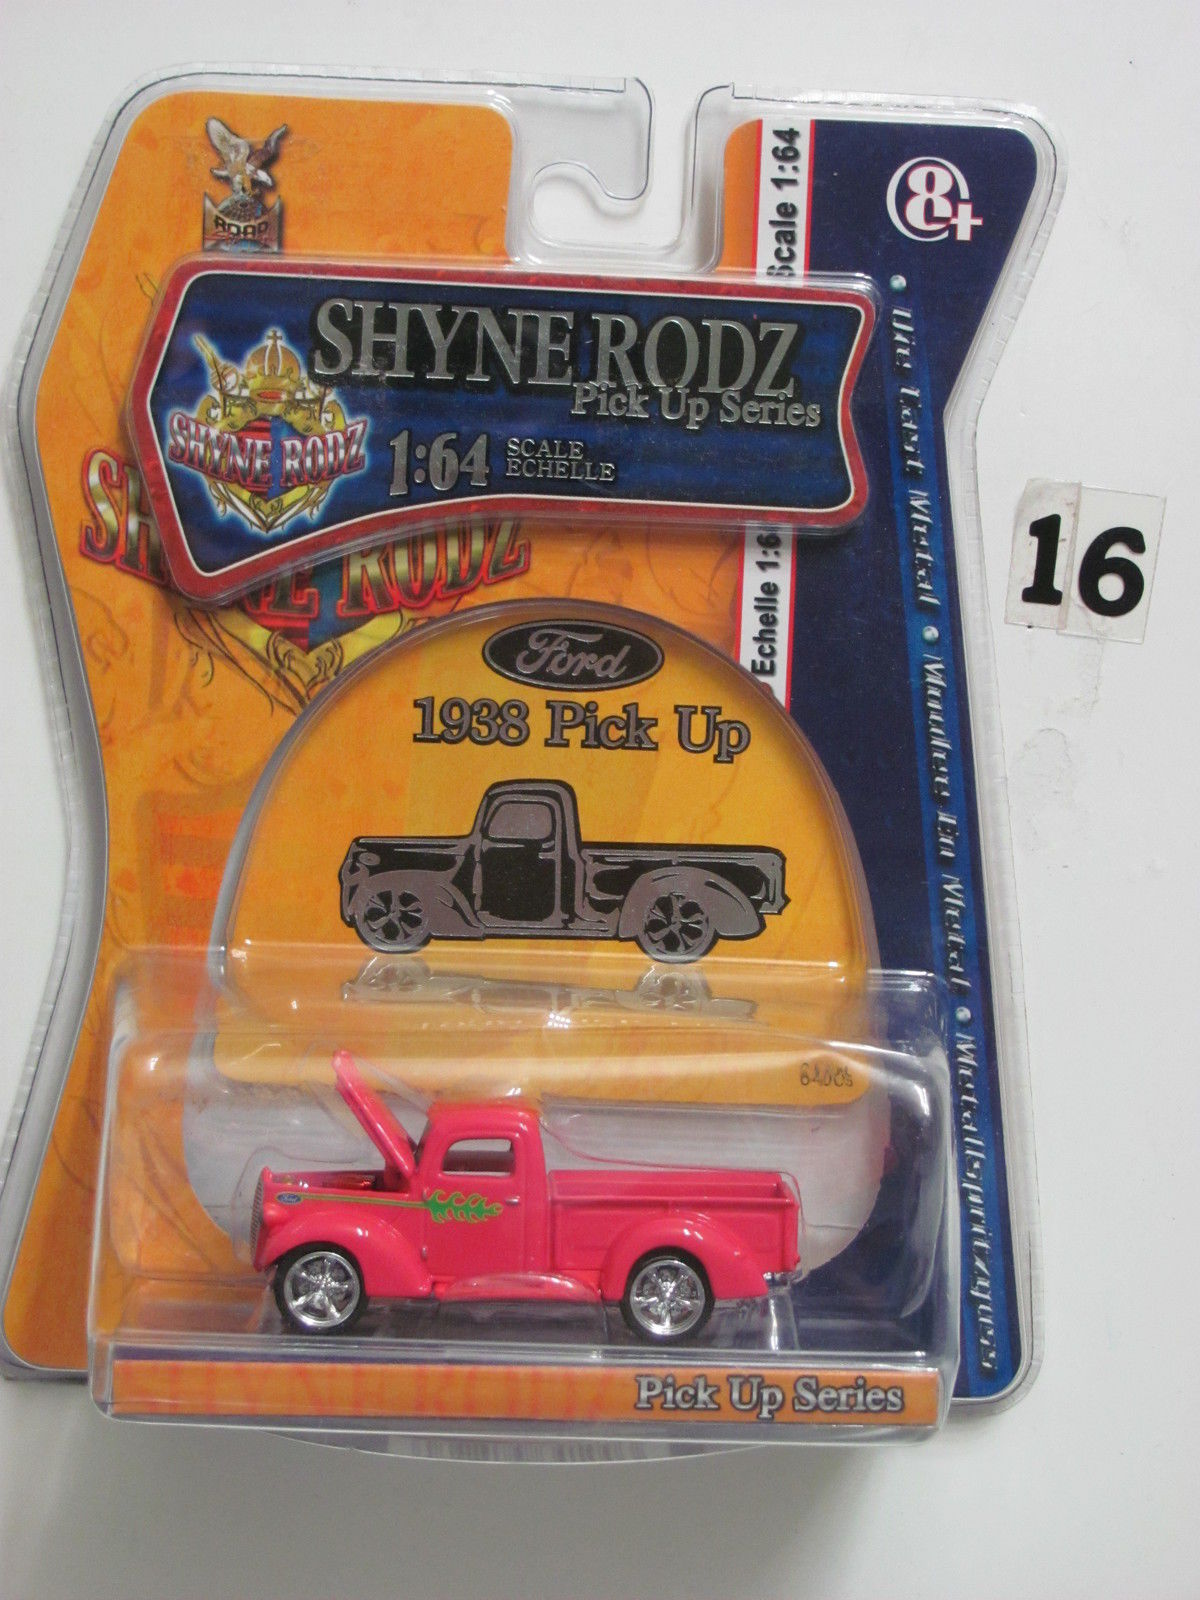 YAT MING DIE CAST METAL COLLECTION PICK UP SERIES SHYNE RODZ 1938 PICK UP